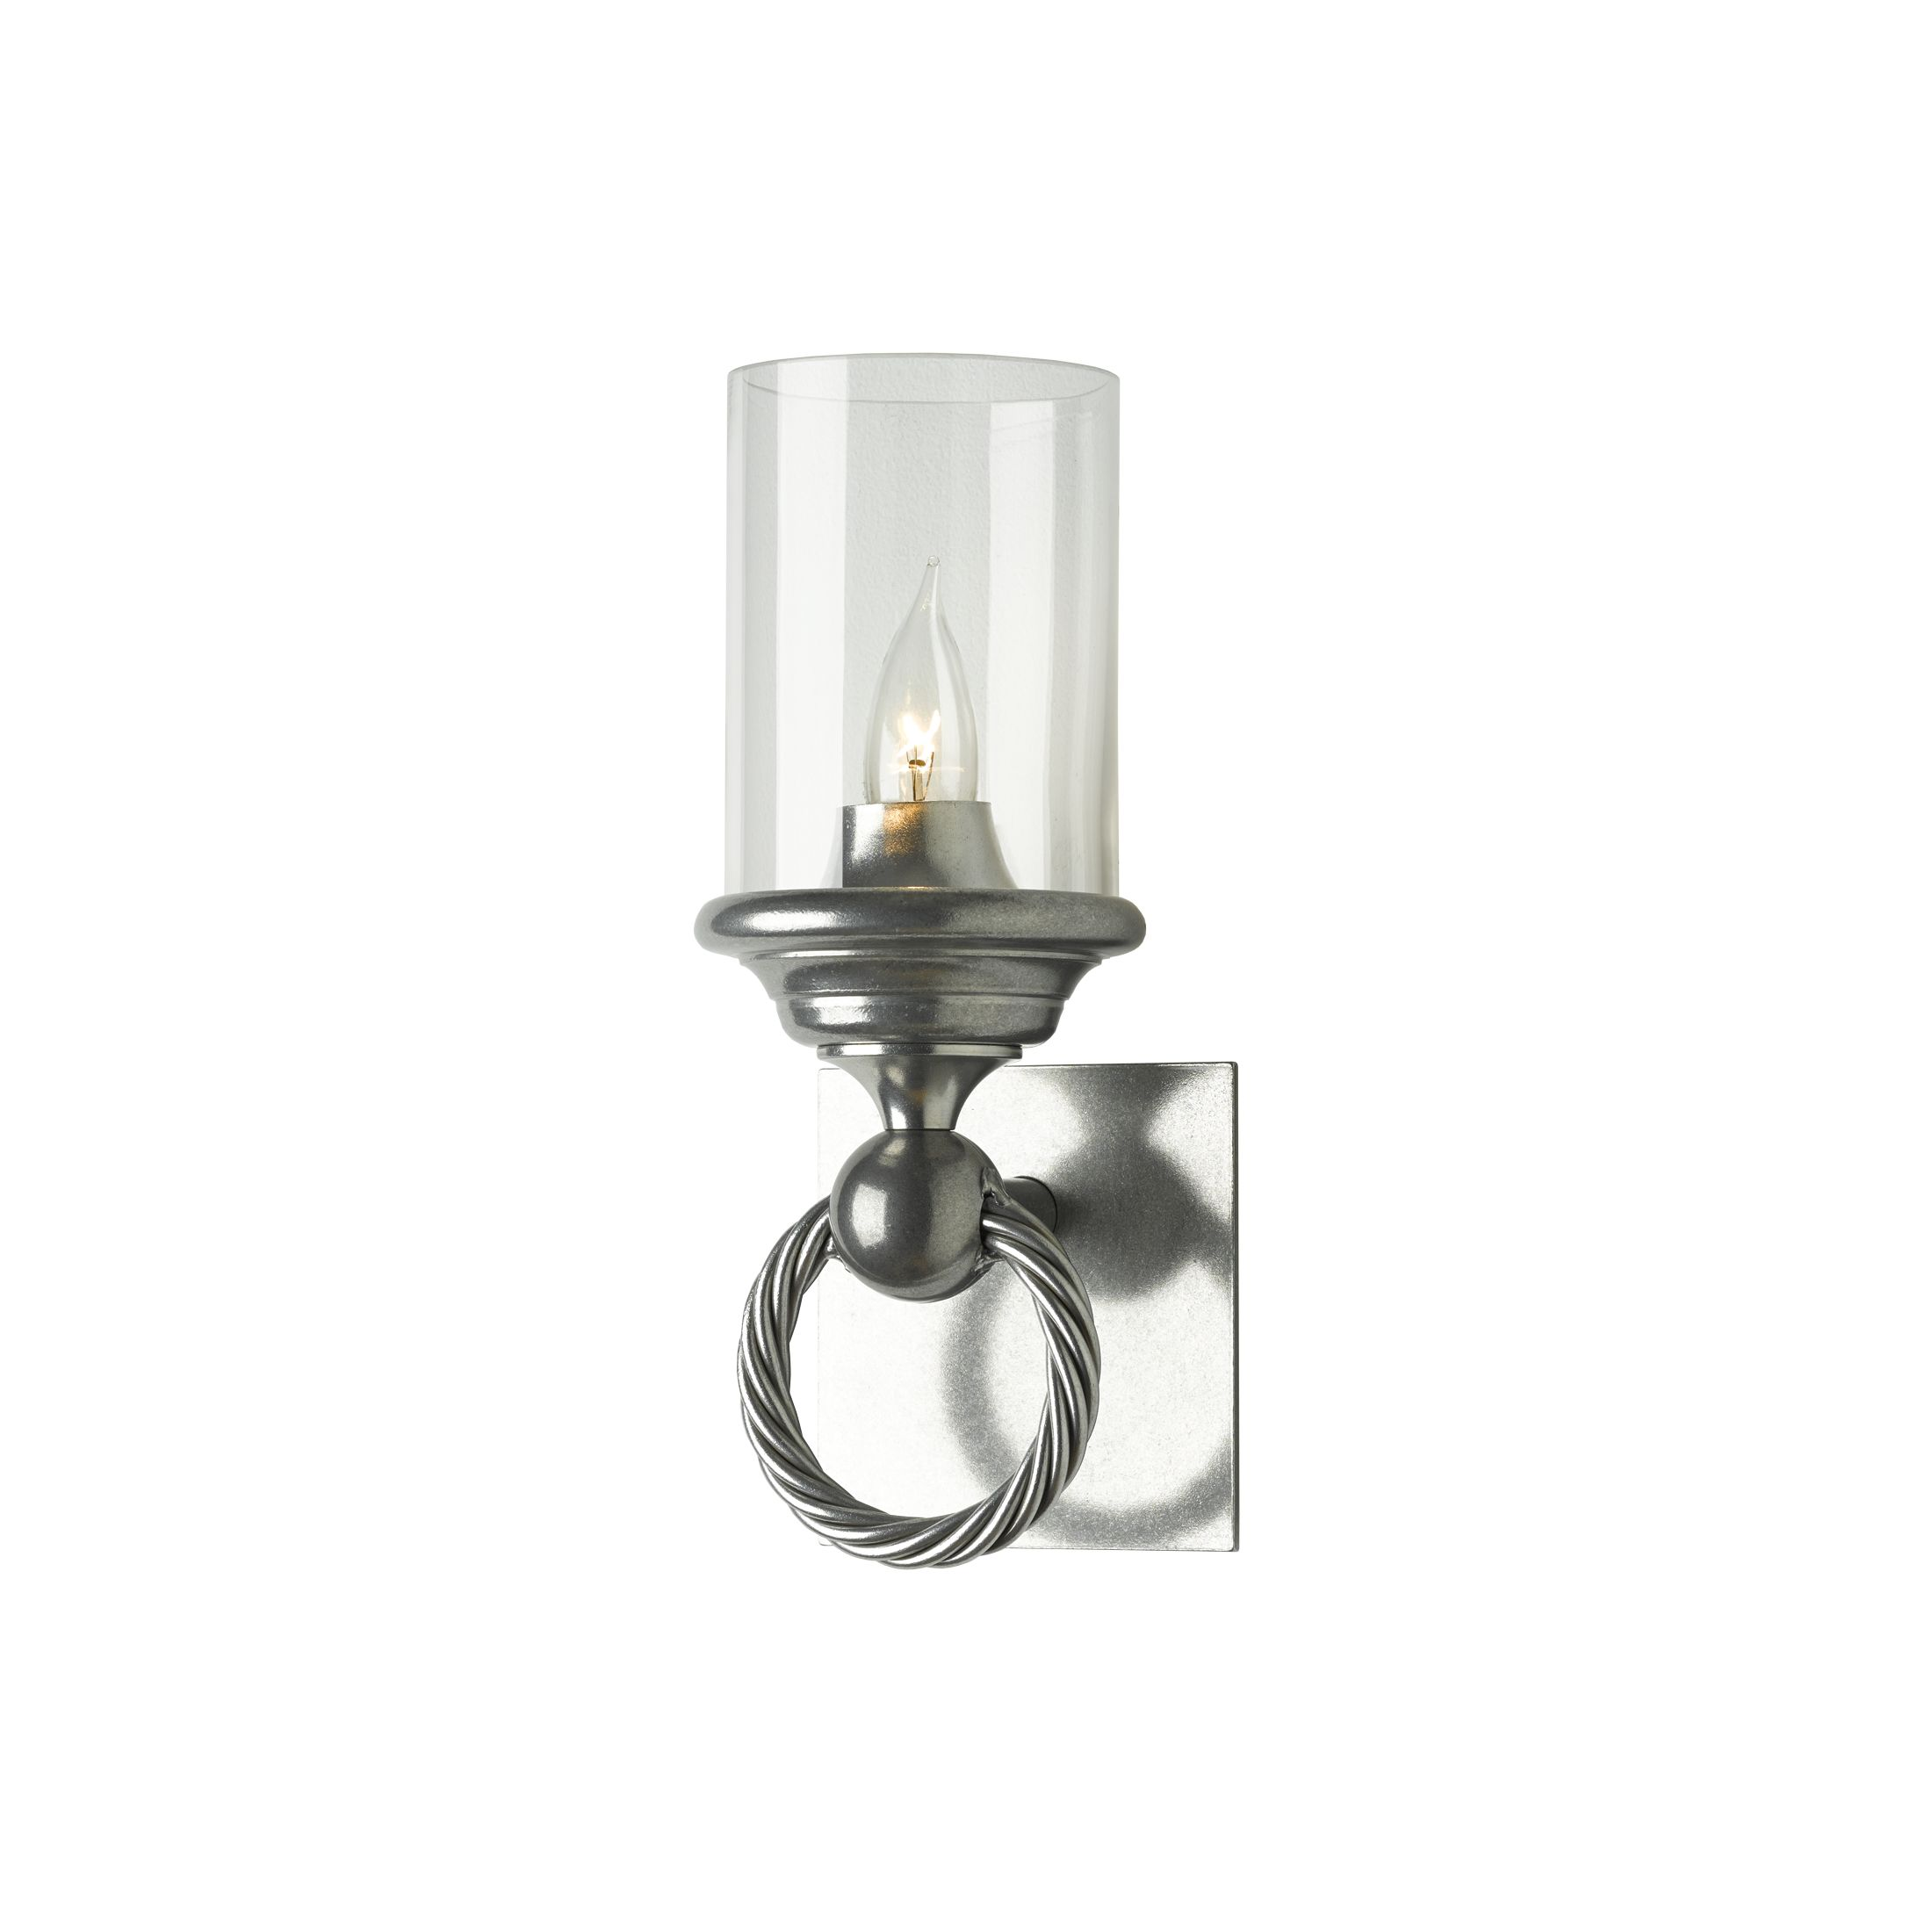 Hubbardton Forge Mason: Cavo Large Outdoor Wall Sconce